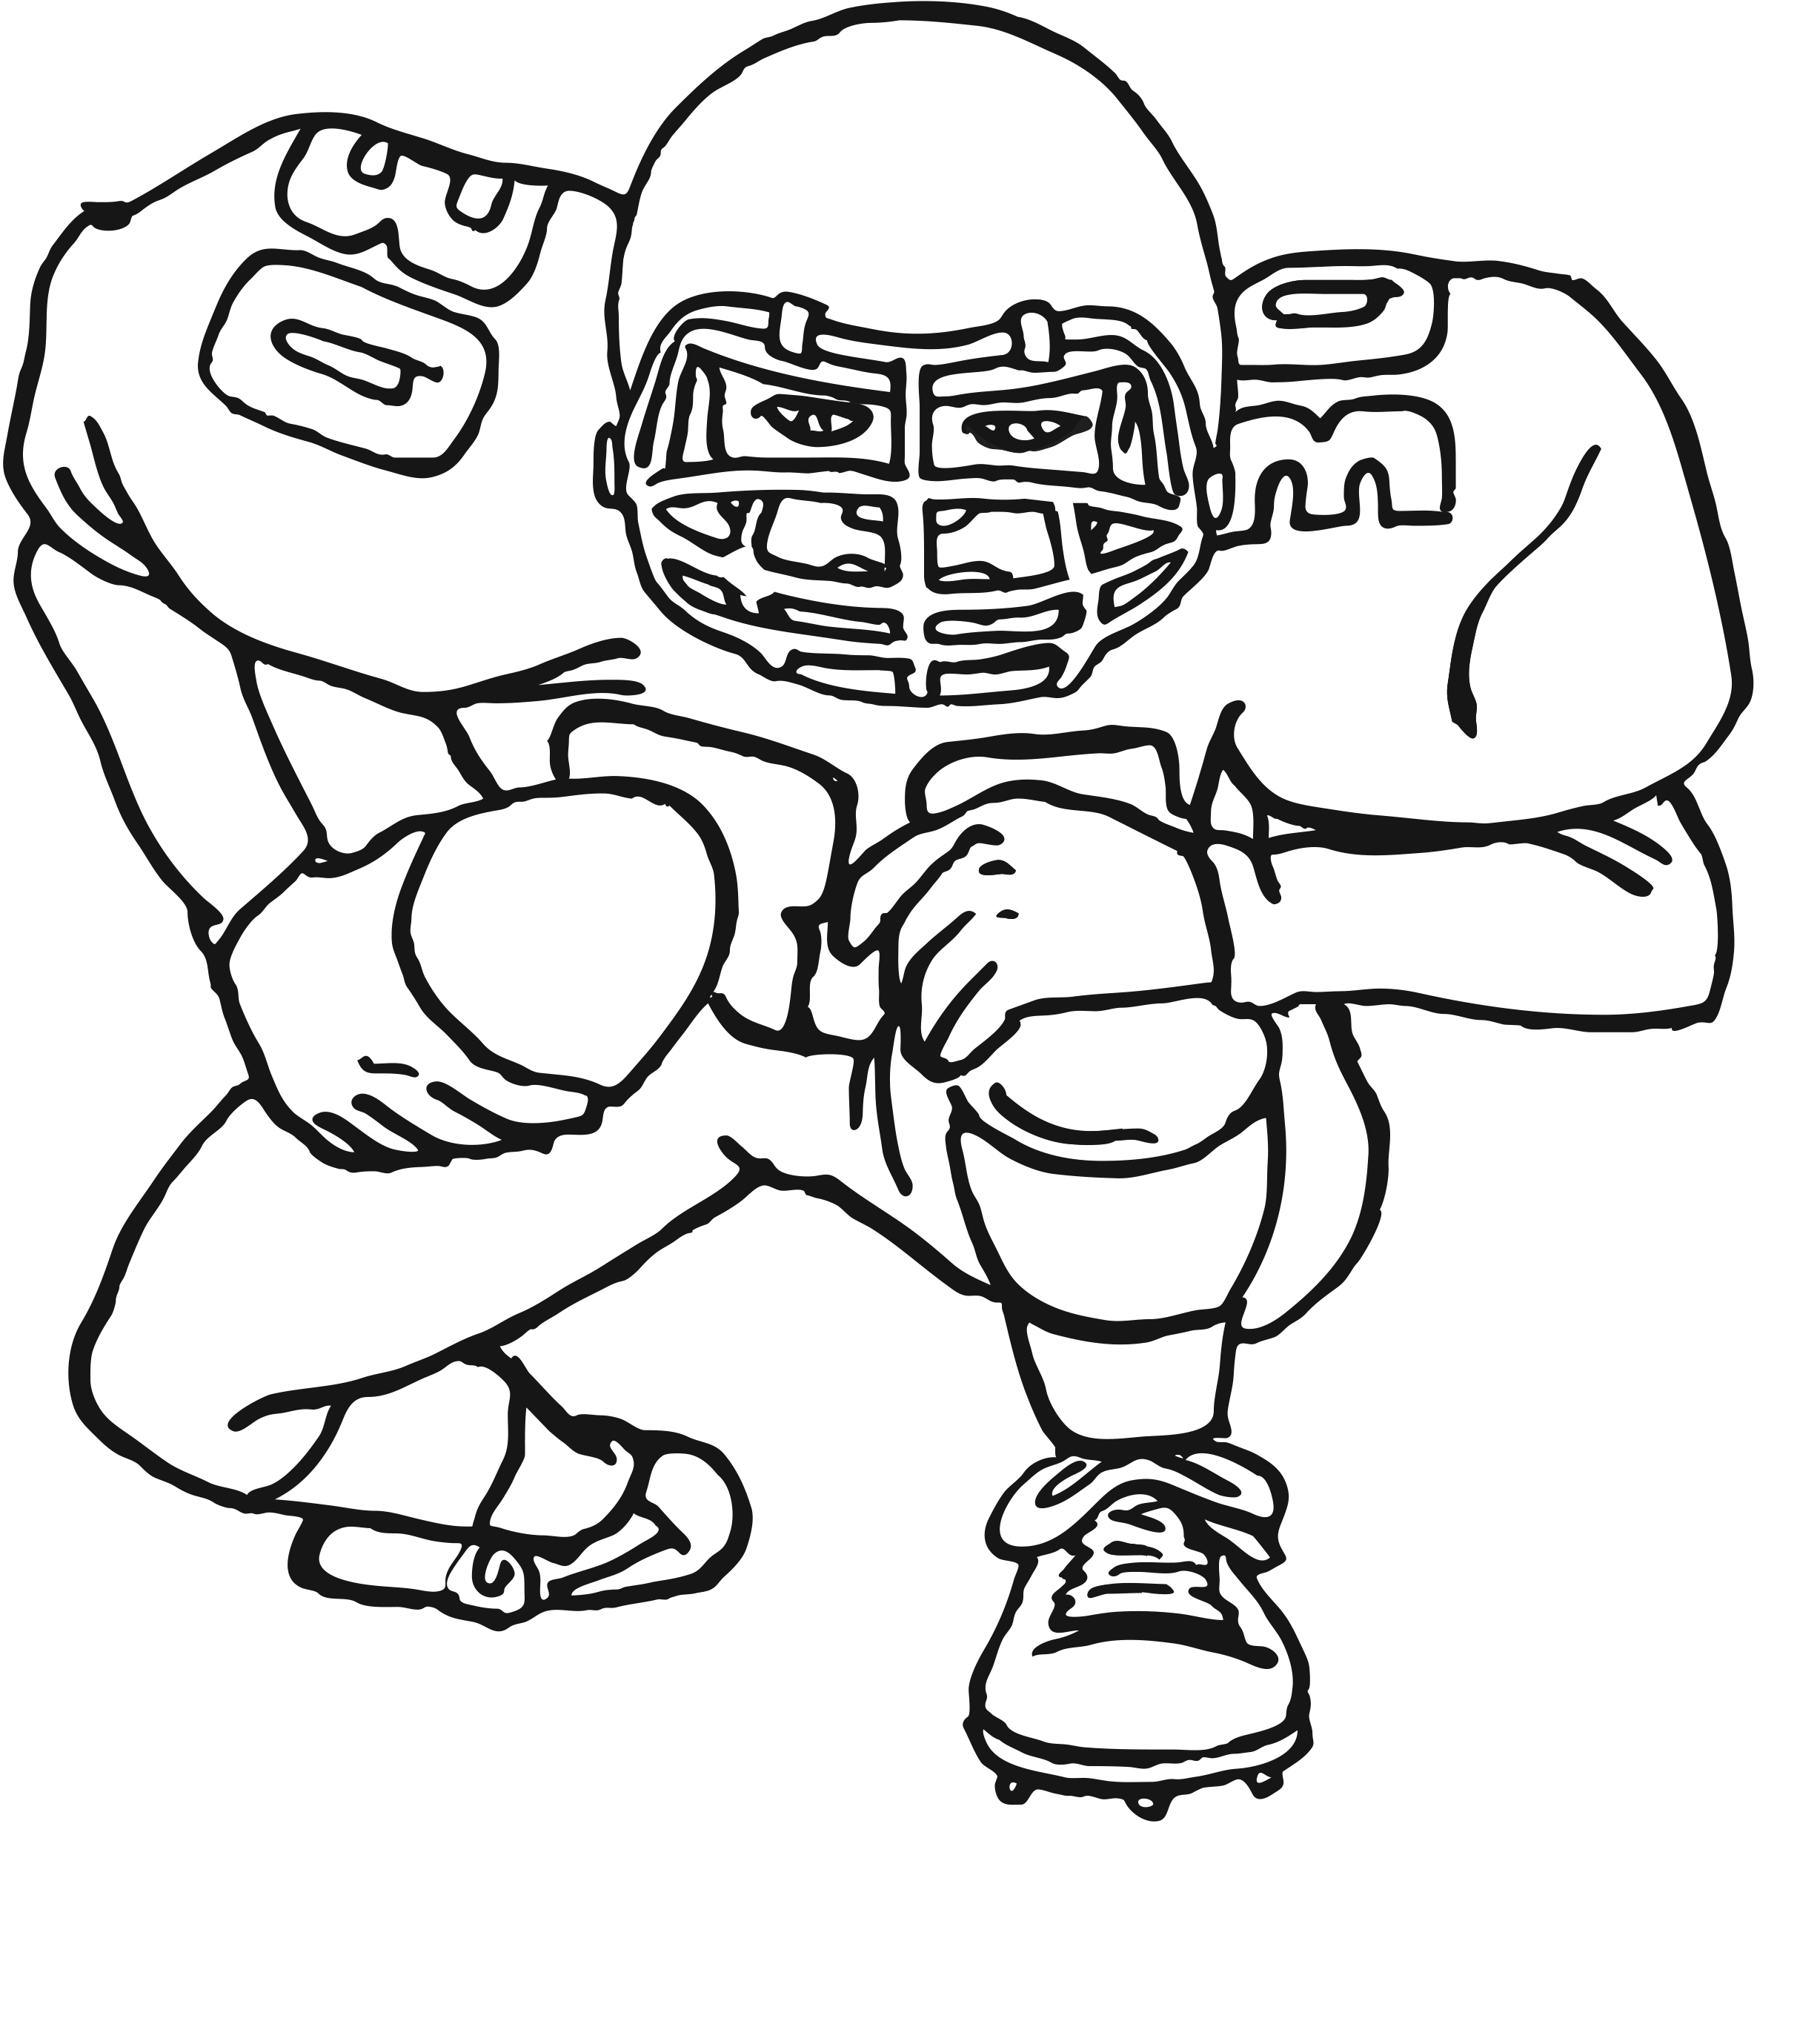 Free printable football colouring pages